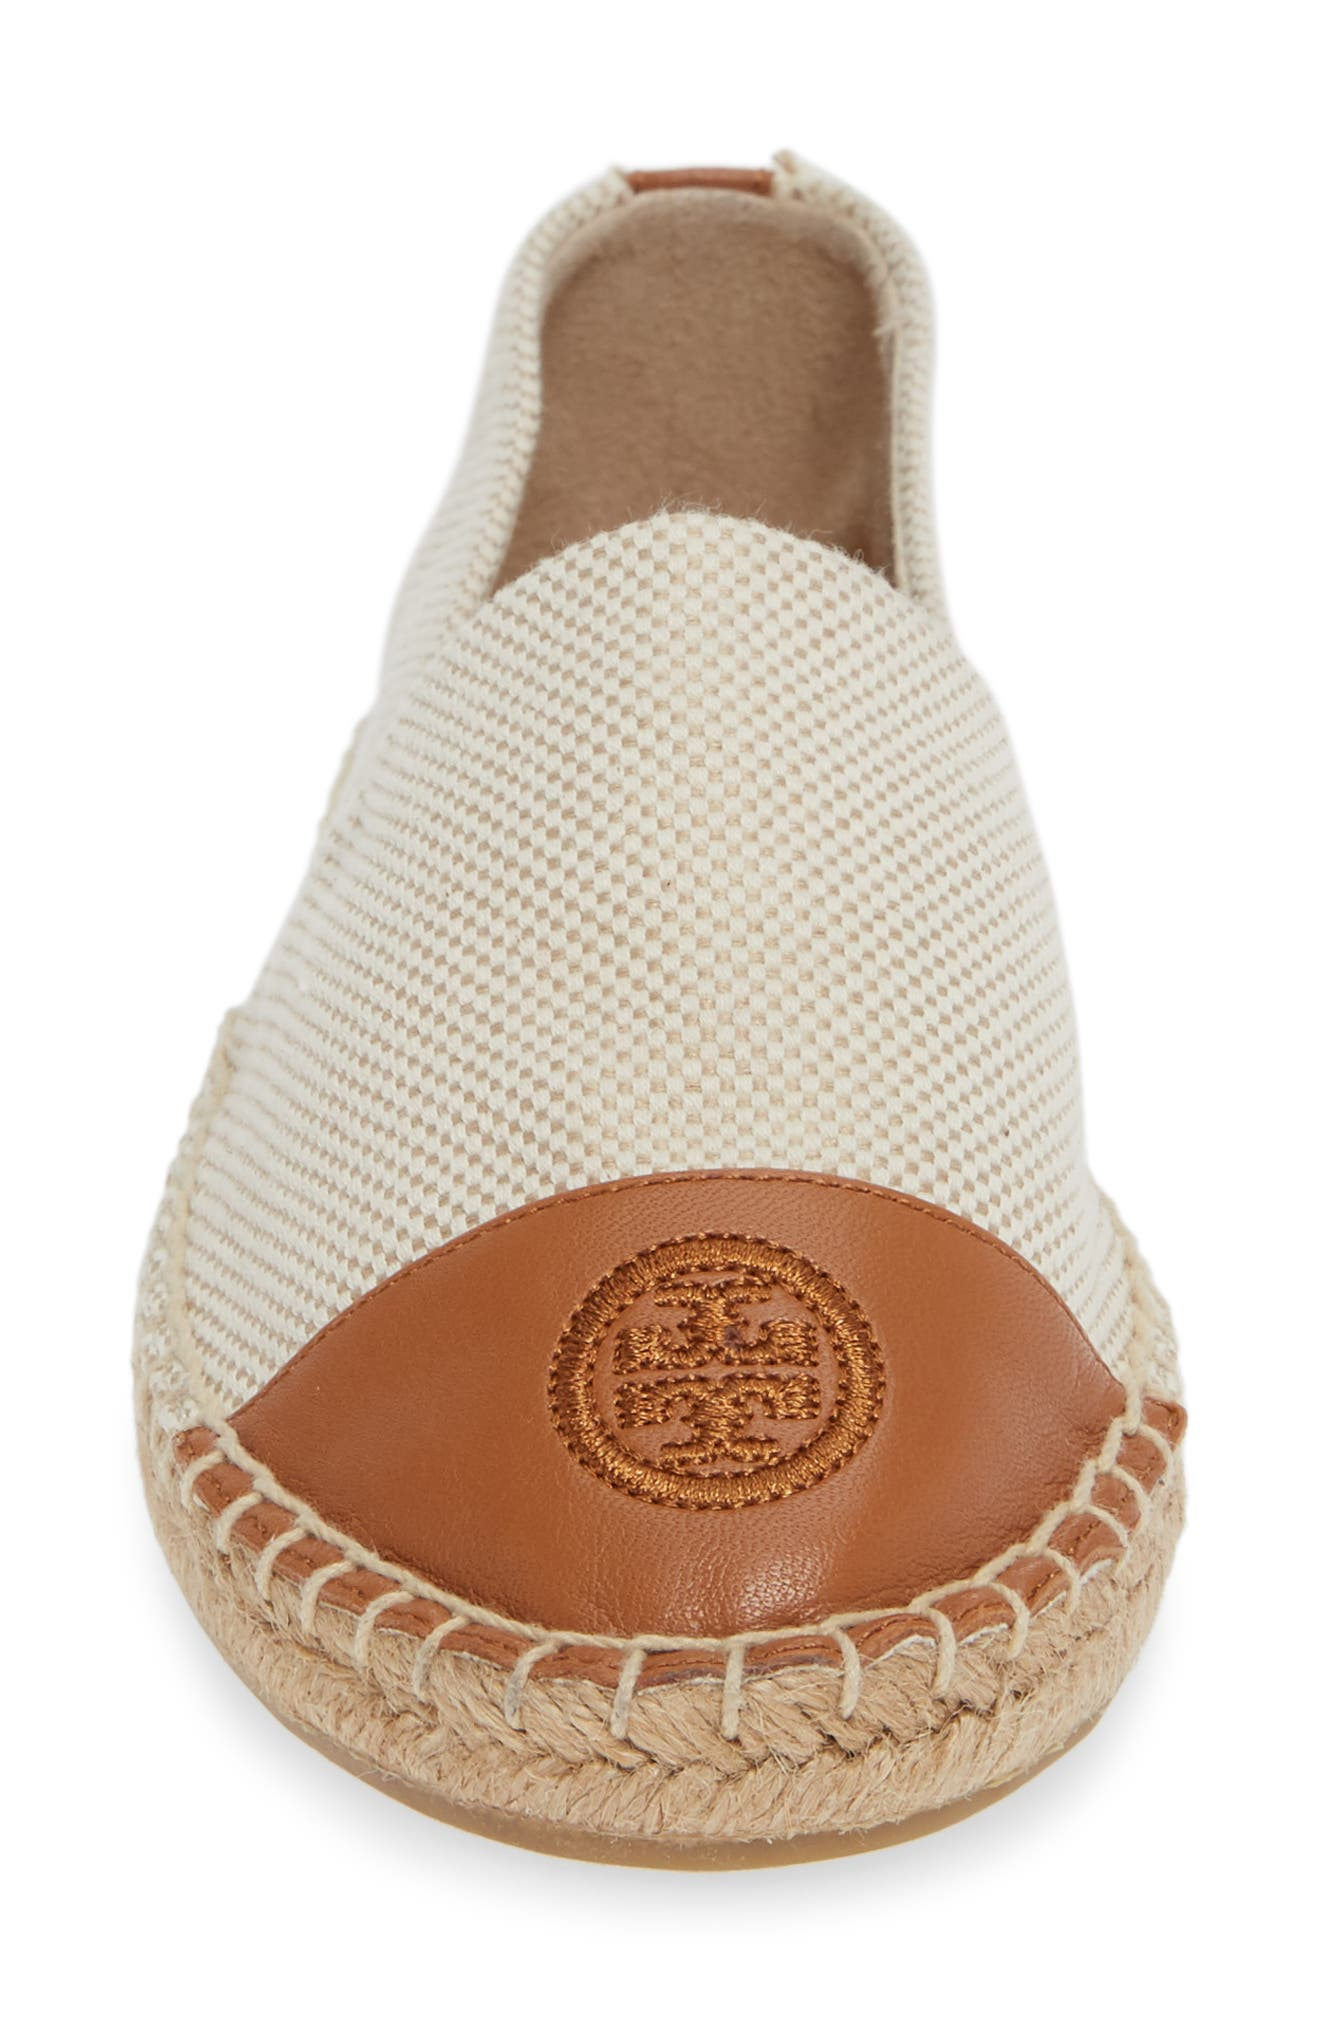 TORY BURCH,                             Colorblock Espadrille Flat,                             Alternate thumbnail 4, color,                             276